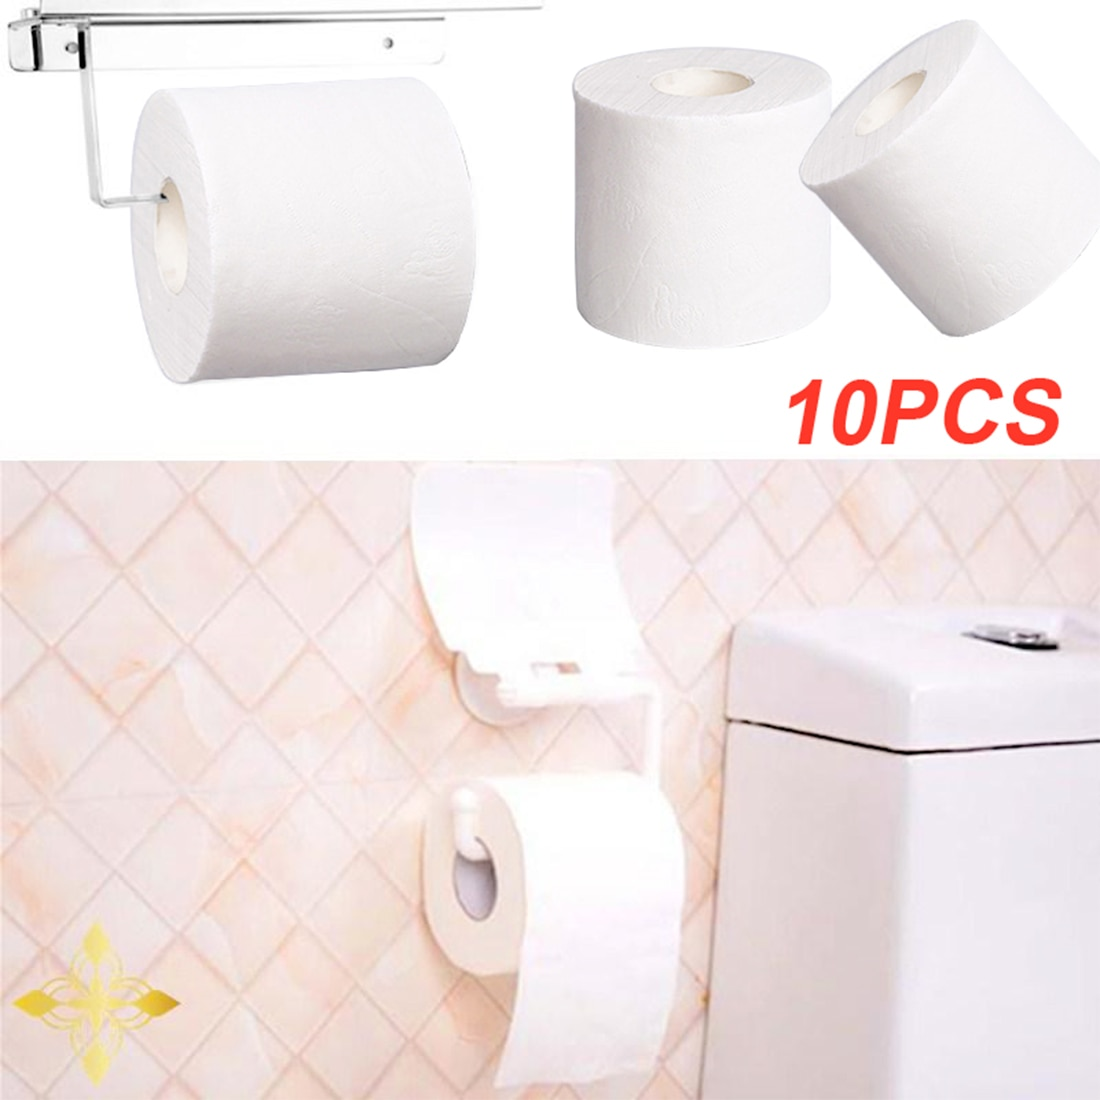 10pcs 3ply Toilet Paper-Towels White Toilet Tissue Hollow Replacement Roll Paper Prevent Flu Cleaning Toilet Tissue z1